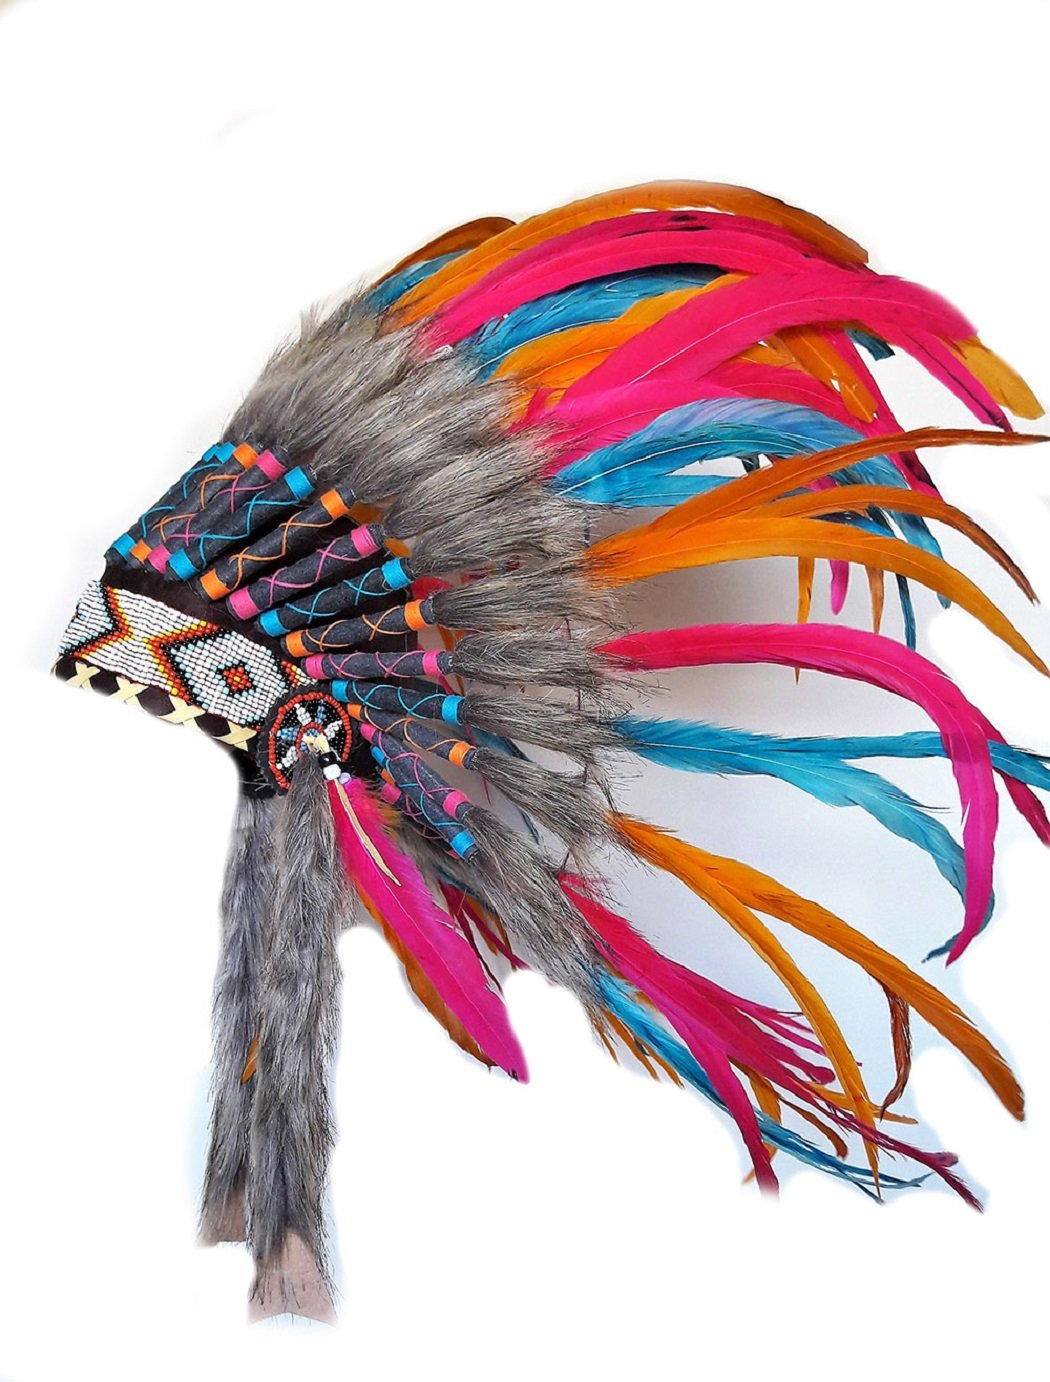 N25 - For 9 To 18 Month Toddler/Baby: Pink, Orange and Turquoise Native American Style Indian Inspired Headdress For The Little Ones !